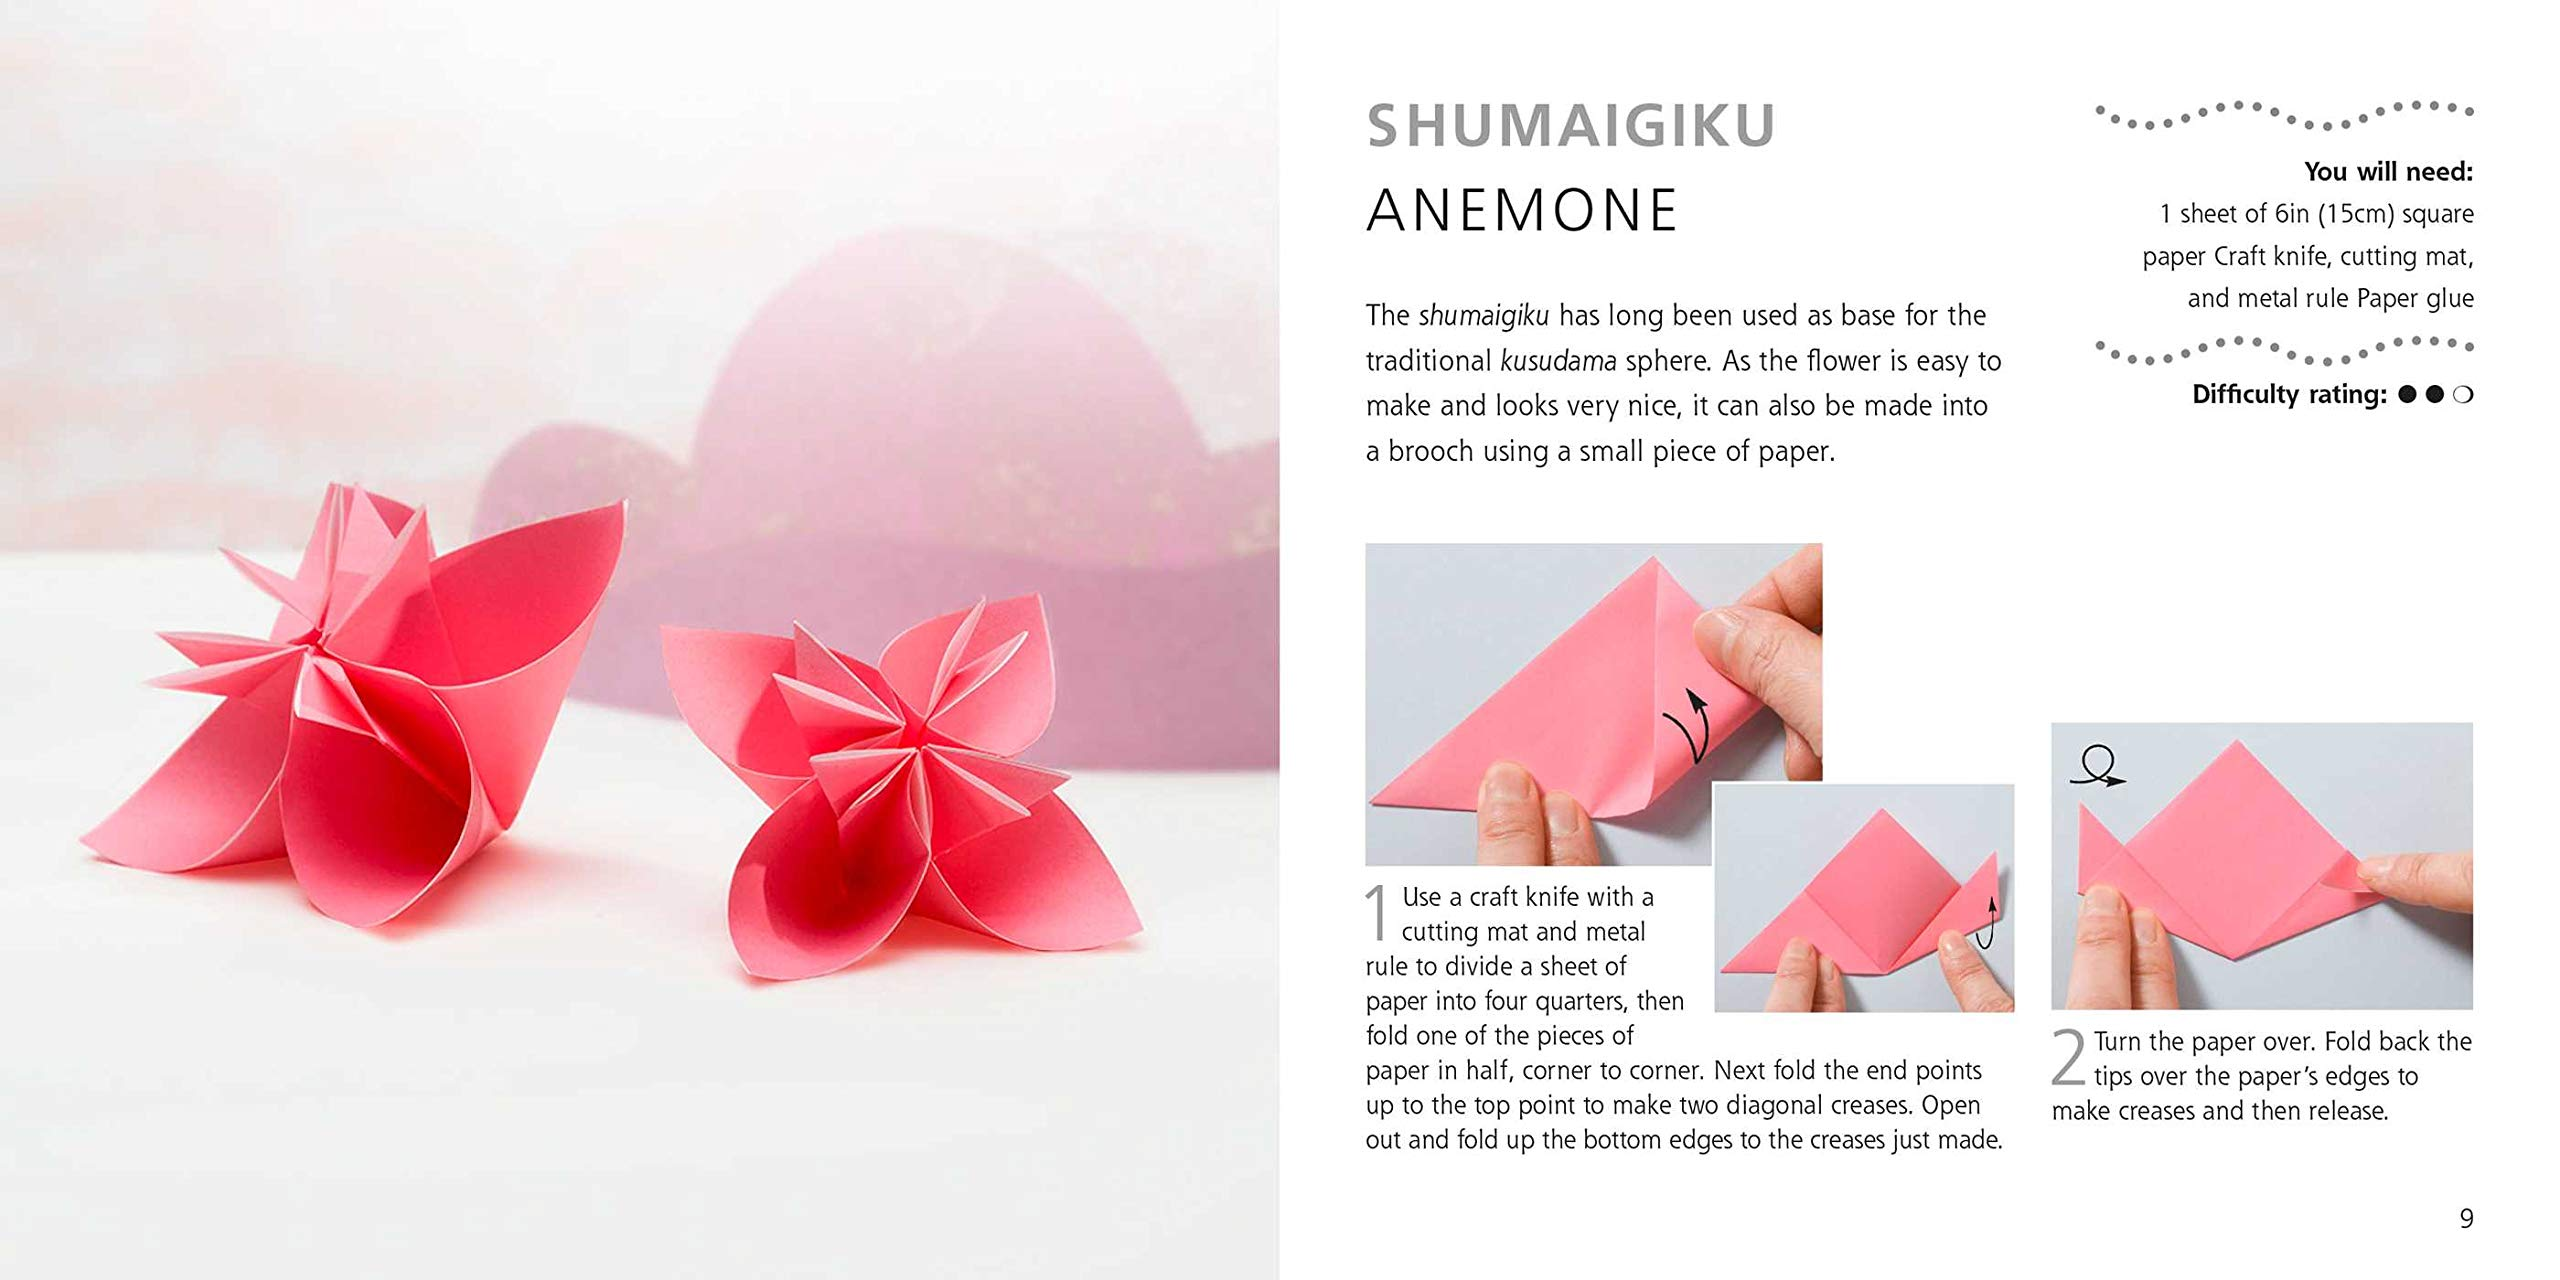 PPT - Origami Flower Instructions PowerPoint Presentation, free download -  ID:6203379 | 1280x2560